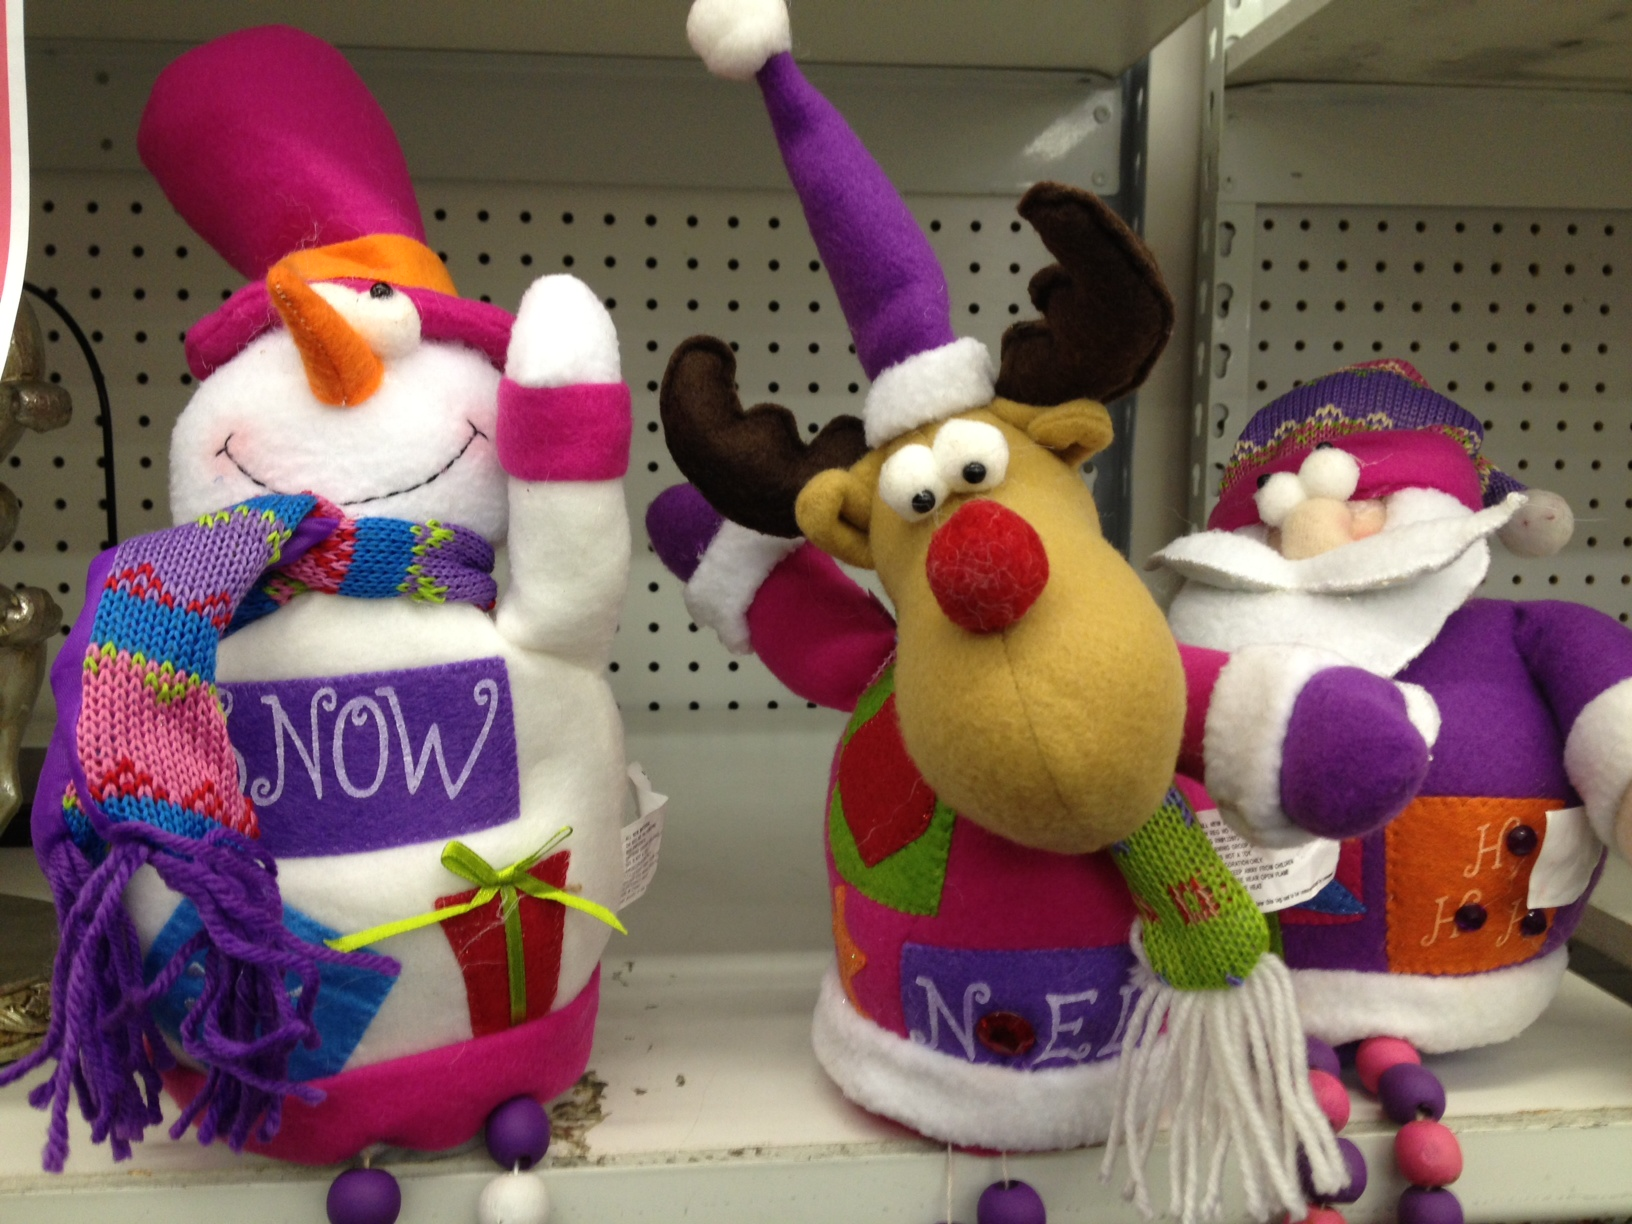 Shelf full of holiday decorations.